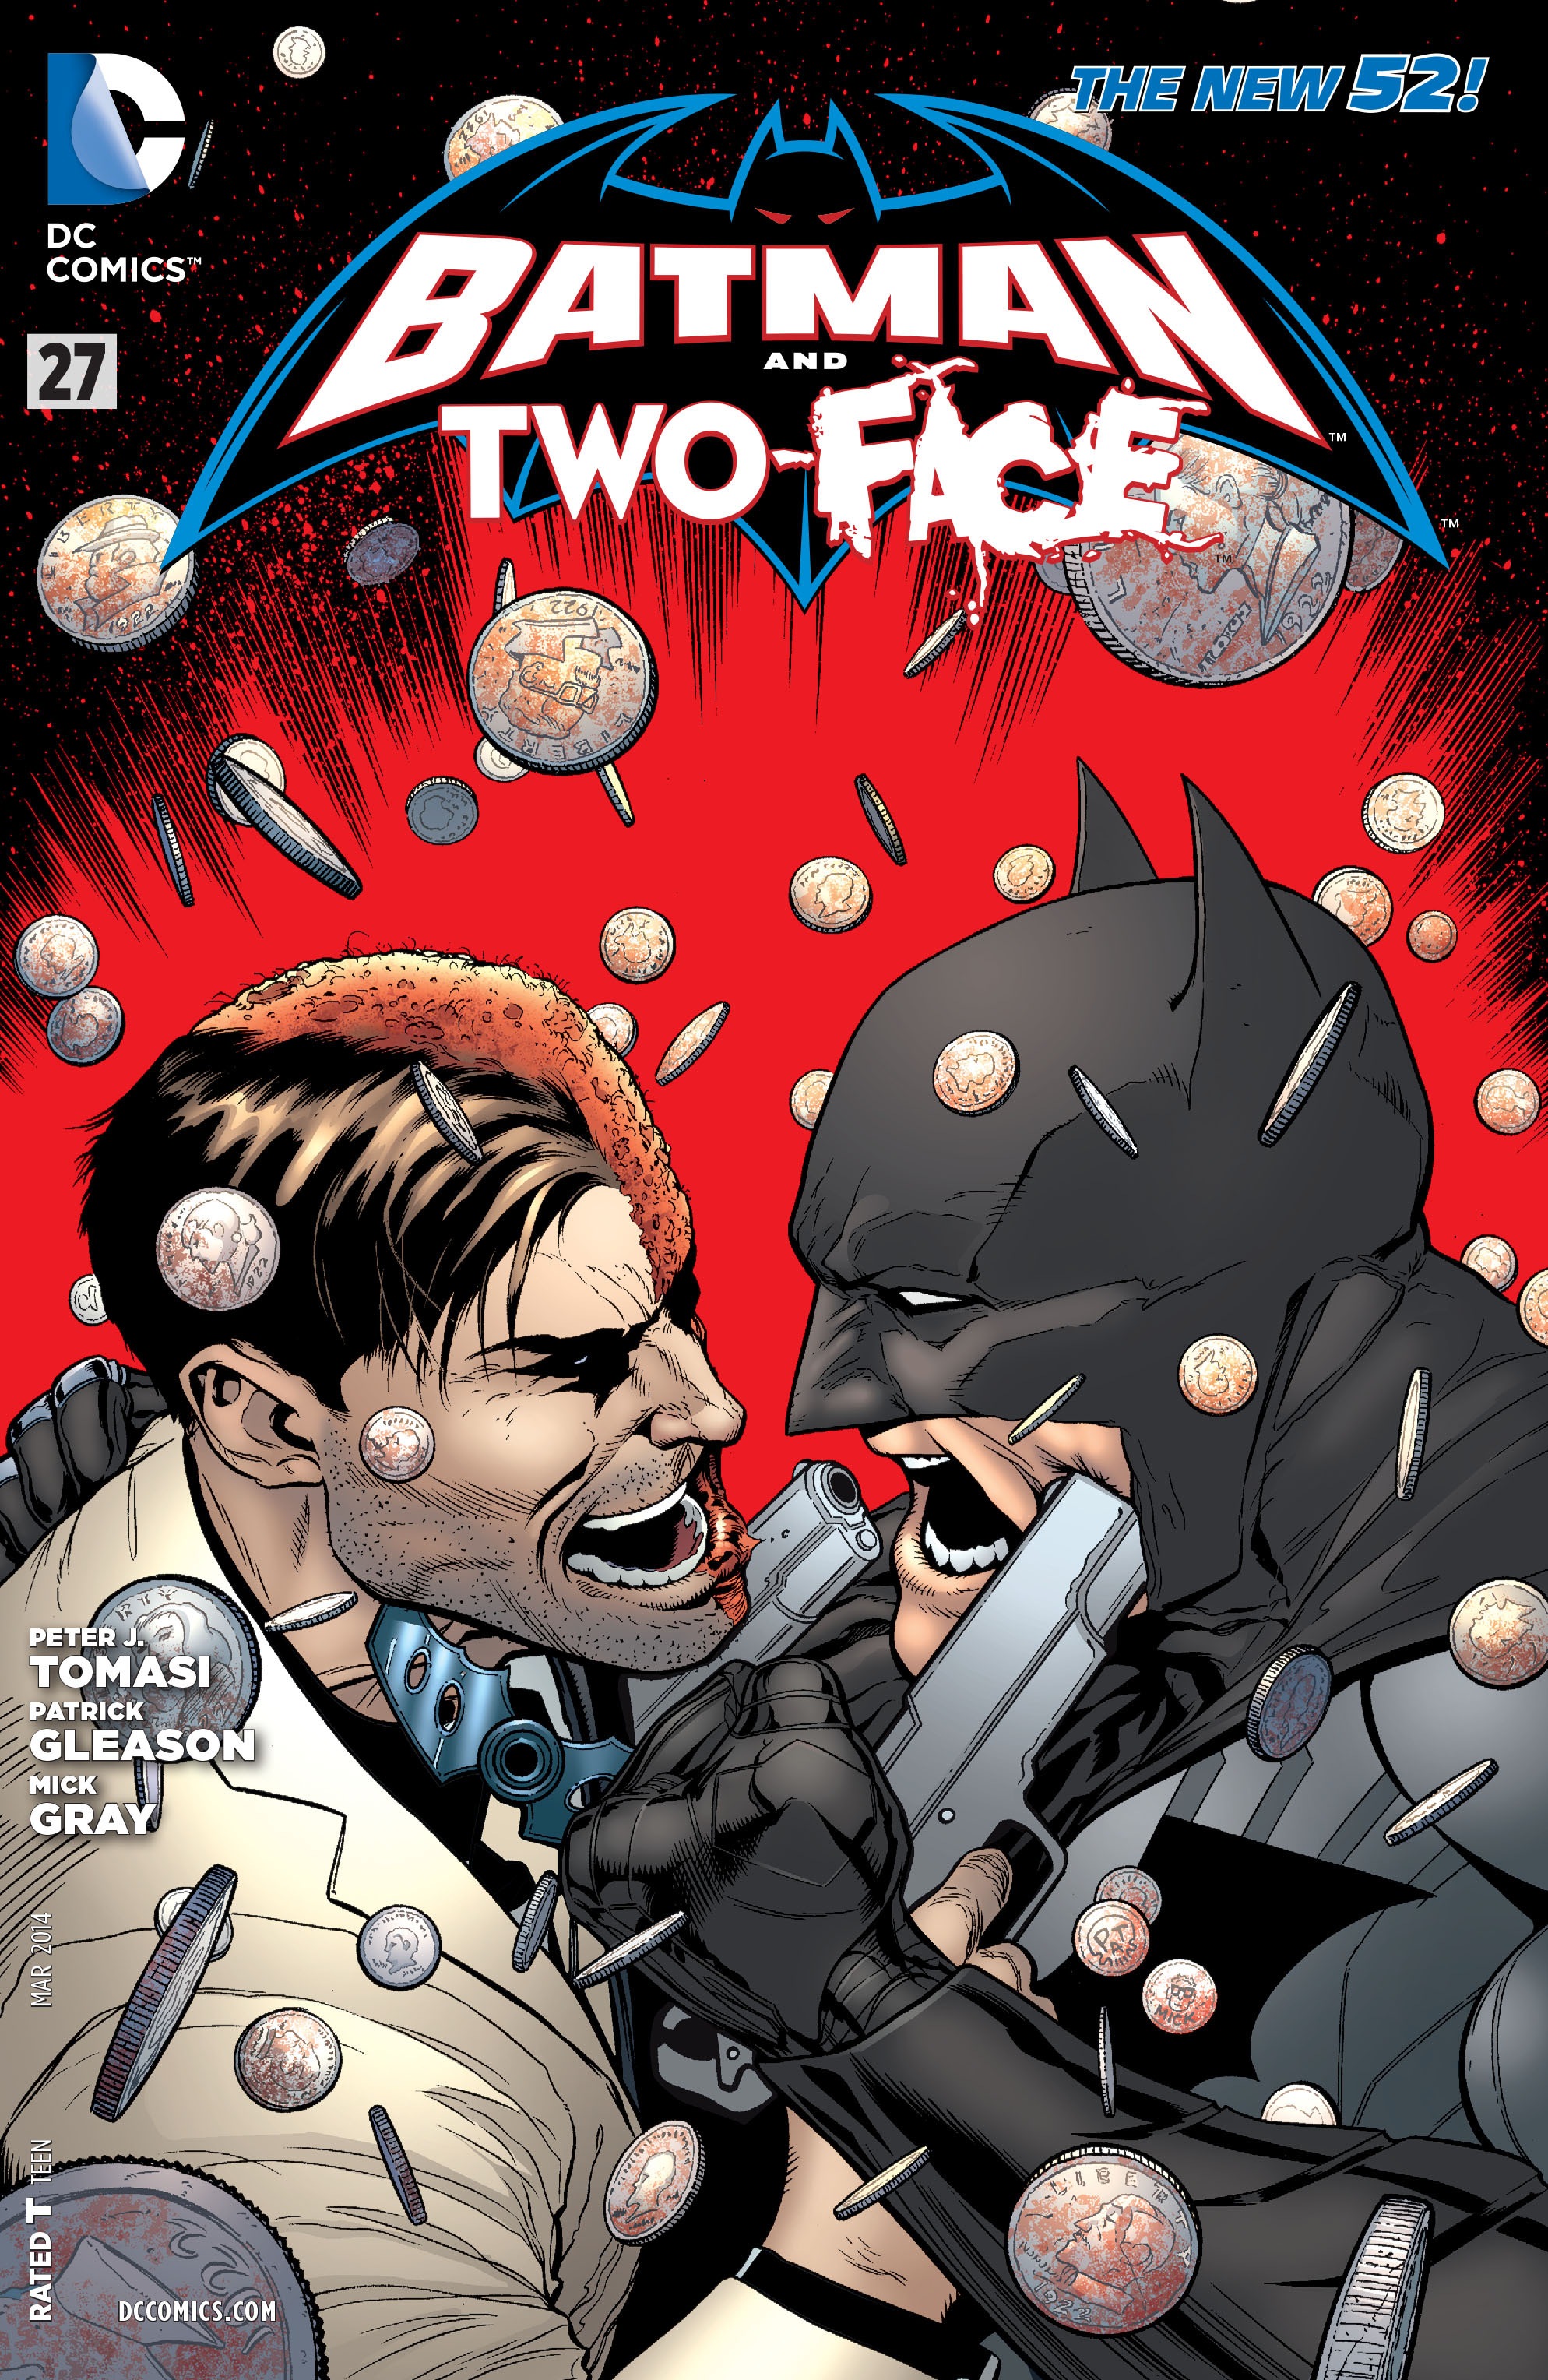 Read online Batman and Robin (2011) comic -  Issue #27 - Batman and Two-Face - 1